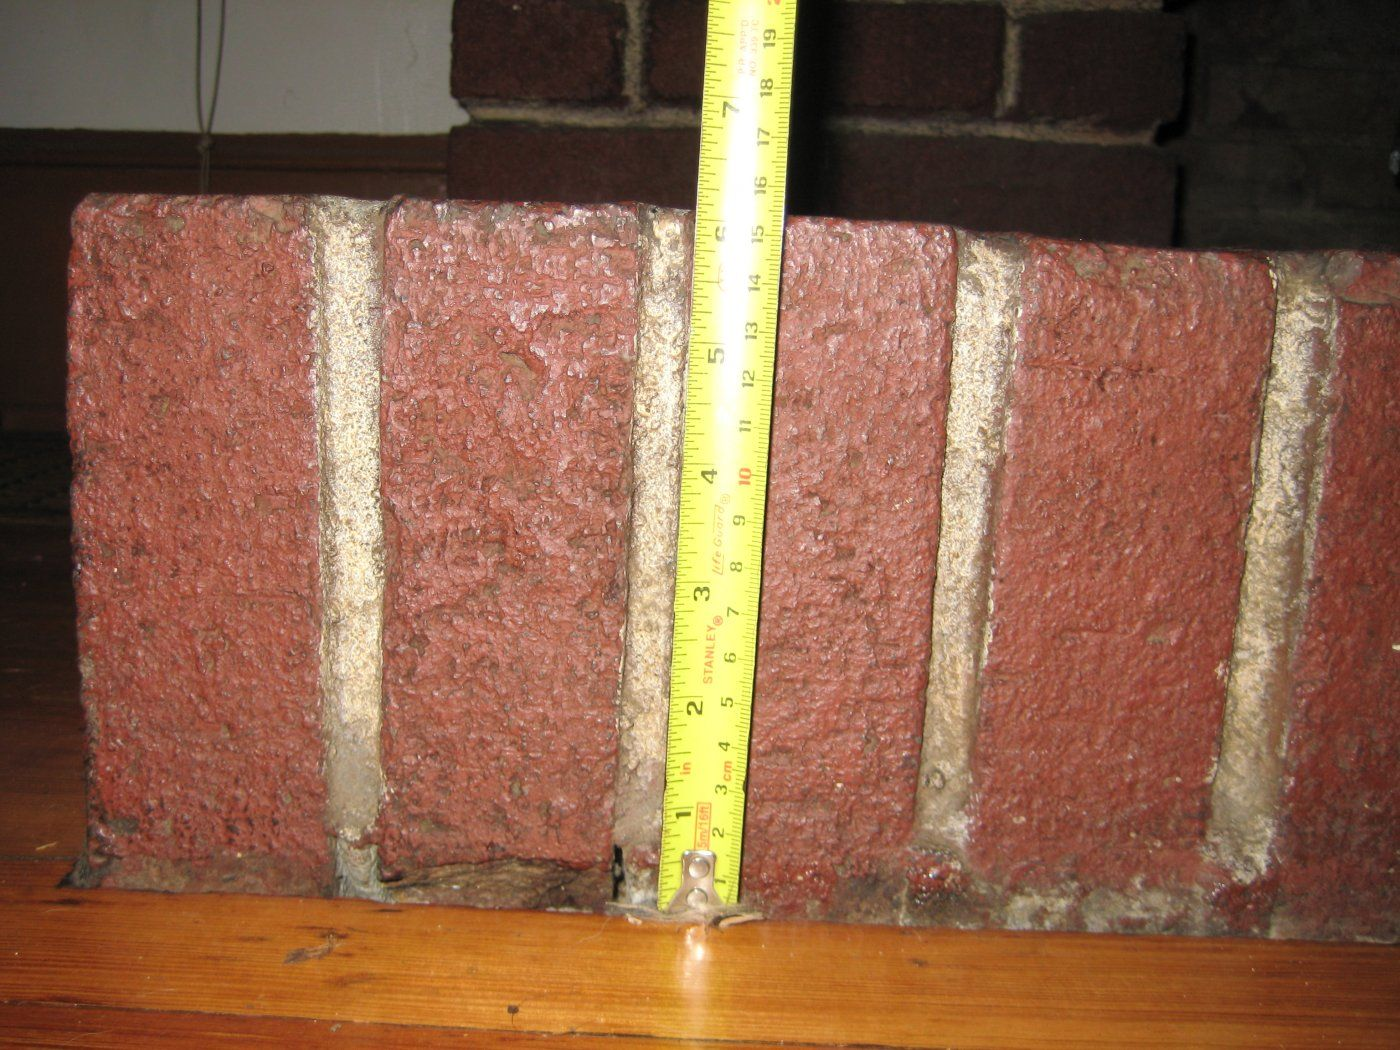 lintel removal or damper plate hearth com forums home